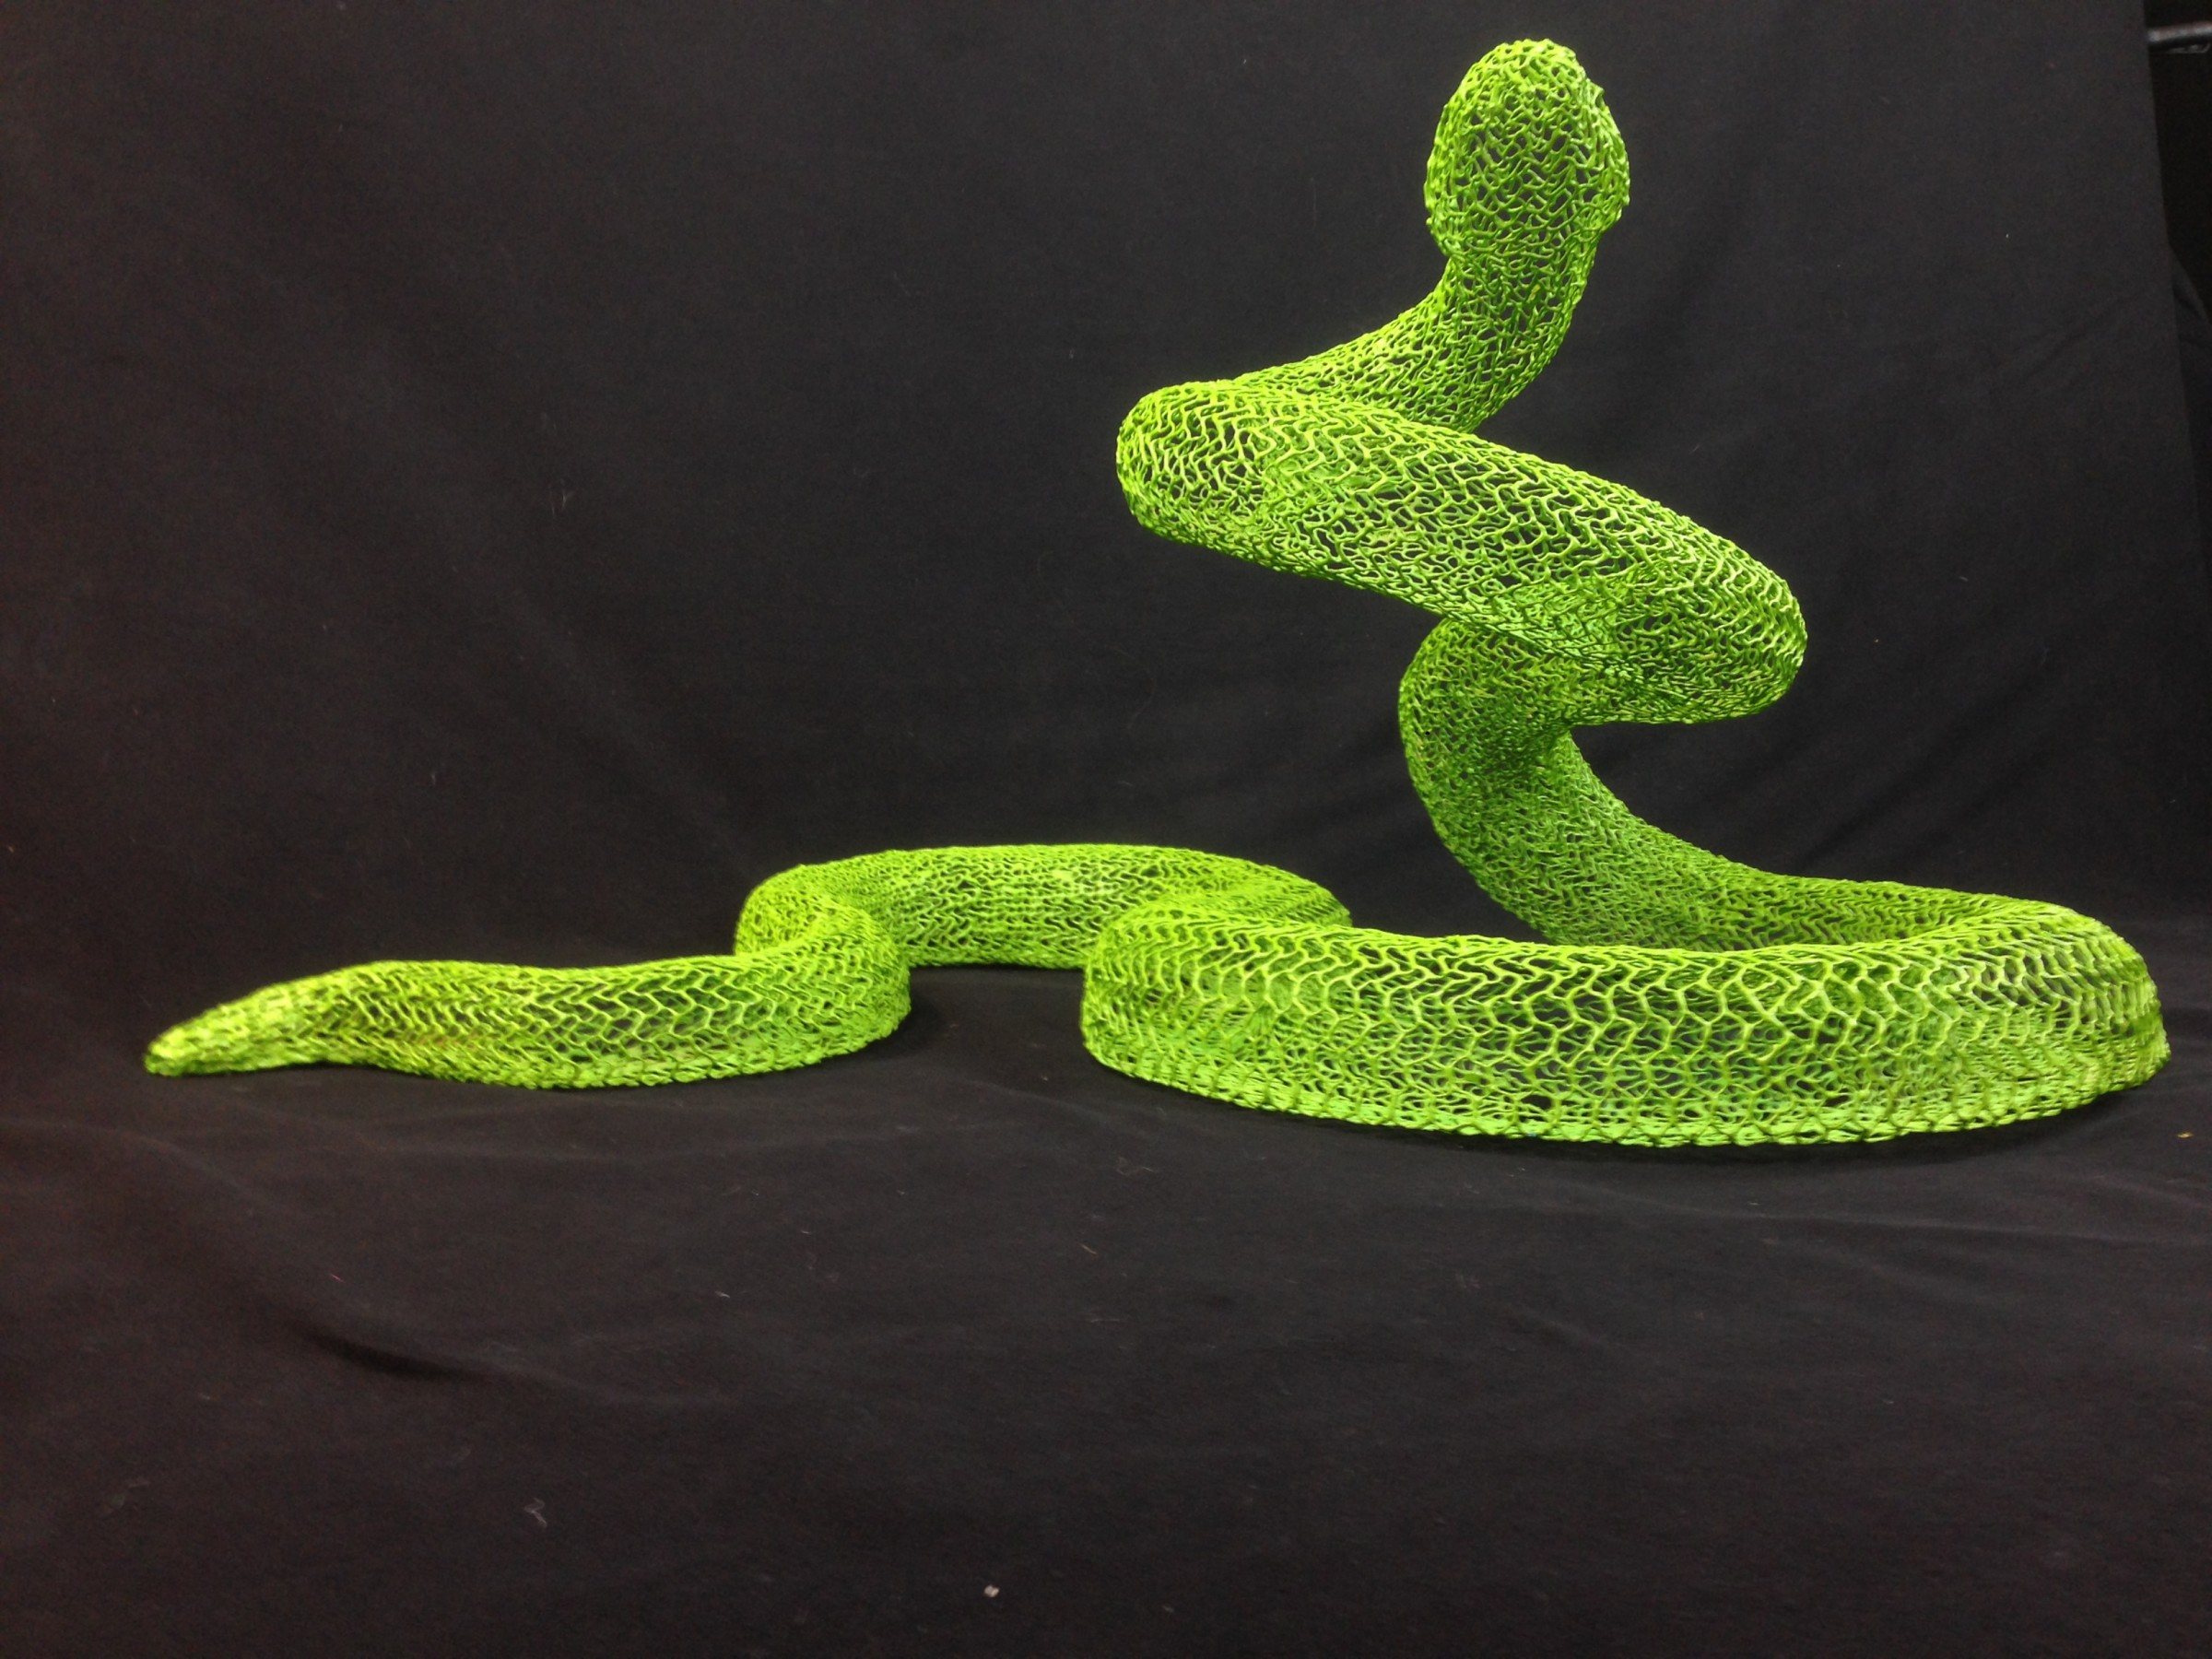 <span class=&#34;link fancybox-details-link&#34;><a href=&#34;/exhibitions/11/installation_shots/artworks4843/&#34;>View Detail Page</a></span><div class=&#34;artist&#34;><strong>Eka Acosta</strong></div><div class=&#34;title&#34;><em>Green Snake</em>, 2018</div><div class=&#34;medium&#34;>Mesh wire</div><div class=&#34;dimensions&#34;>44 x 98 x 60 cm</div>€ 4,339.62